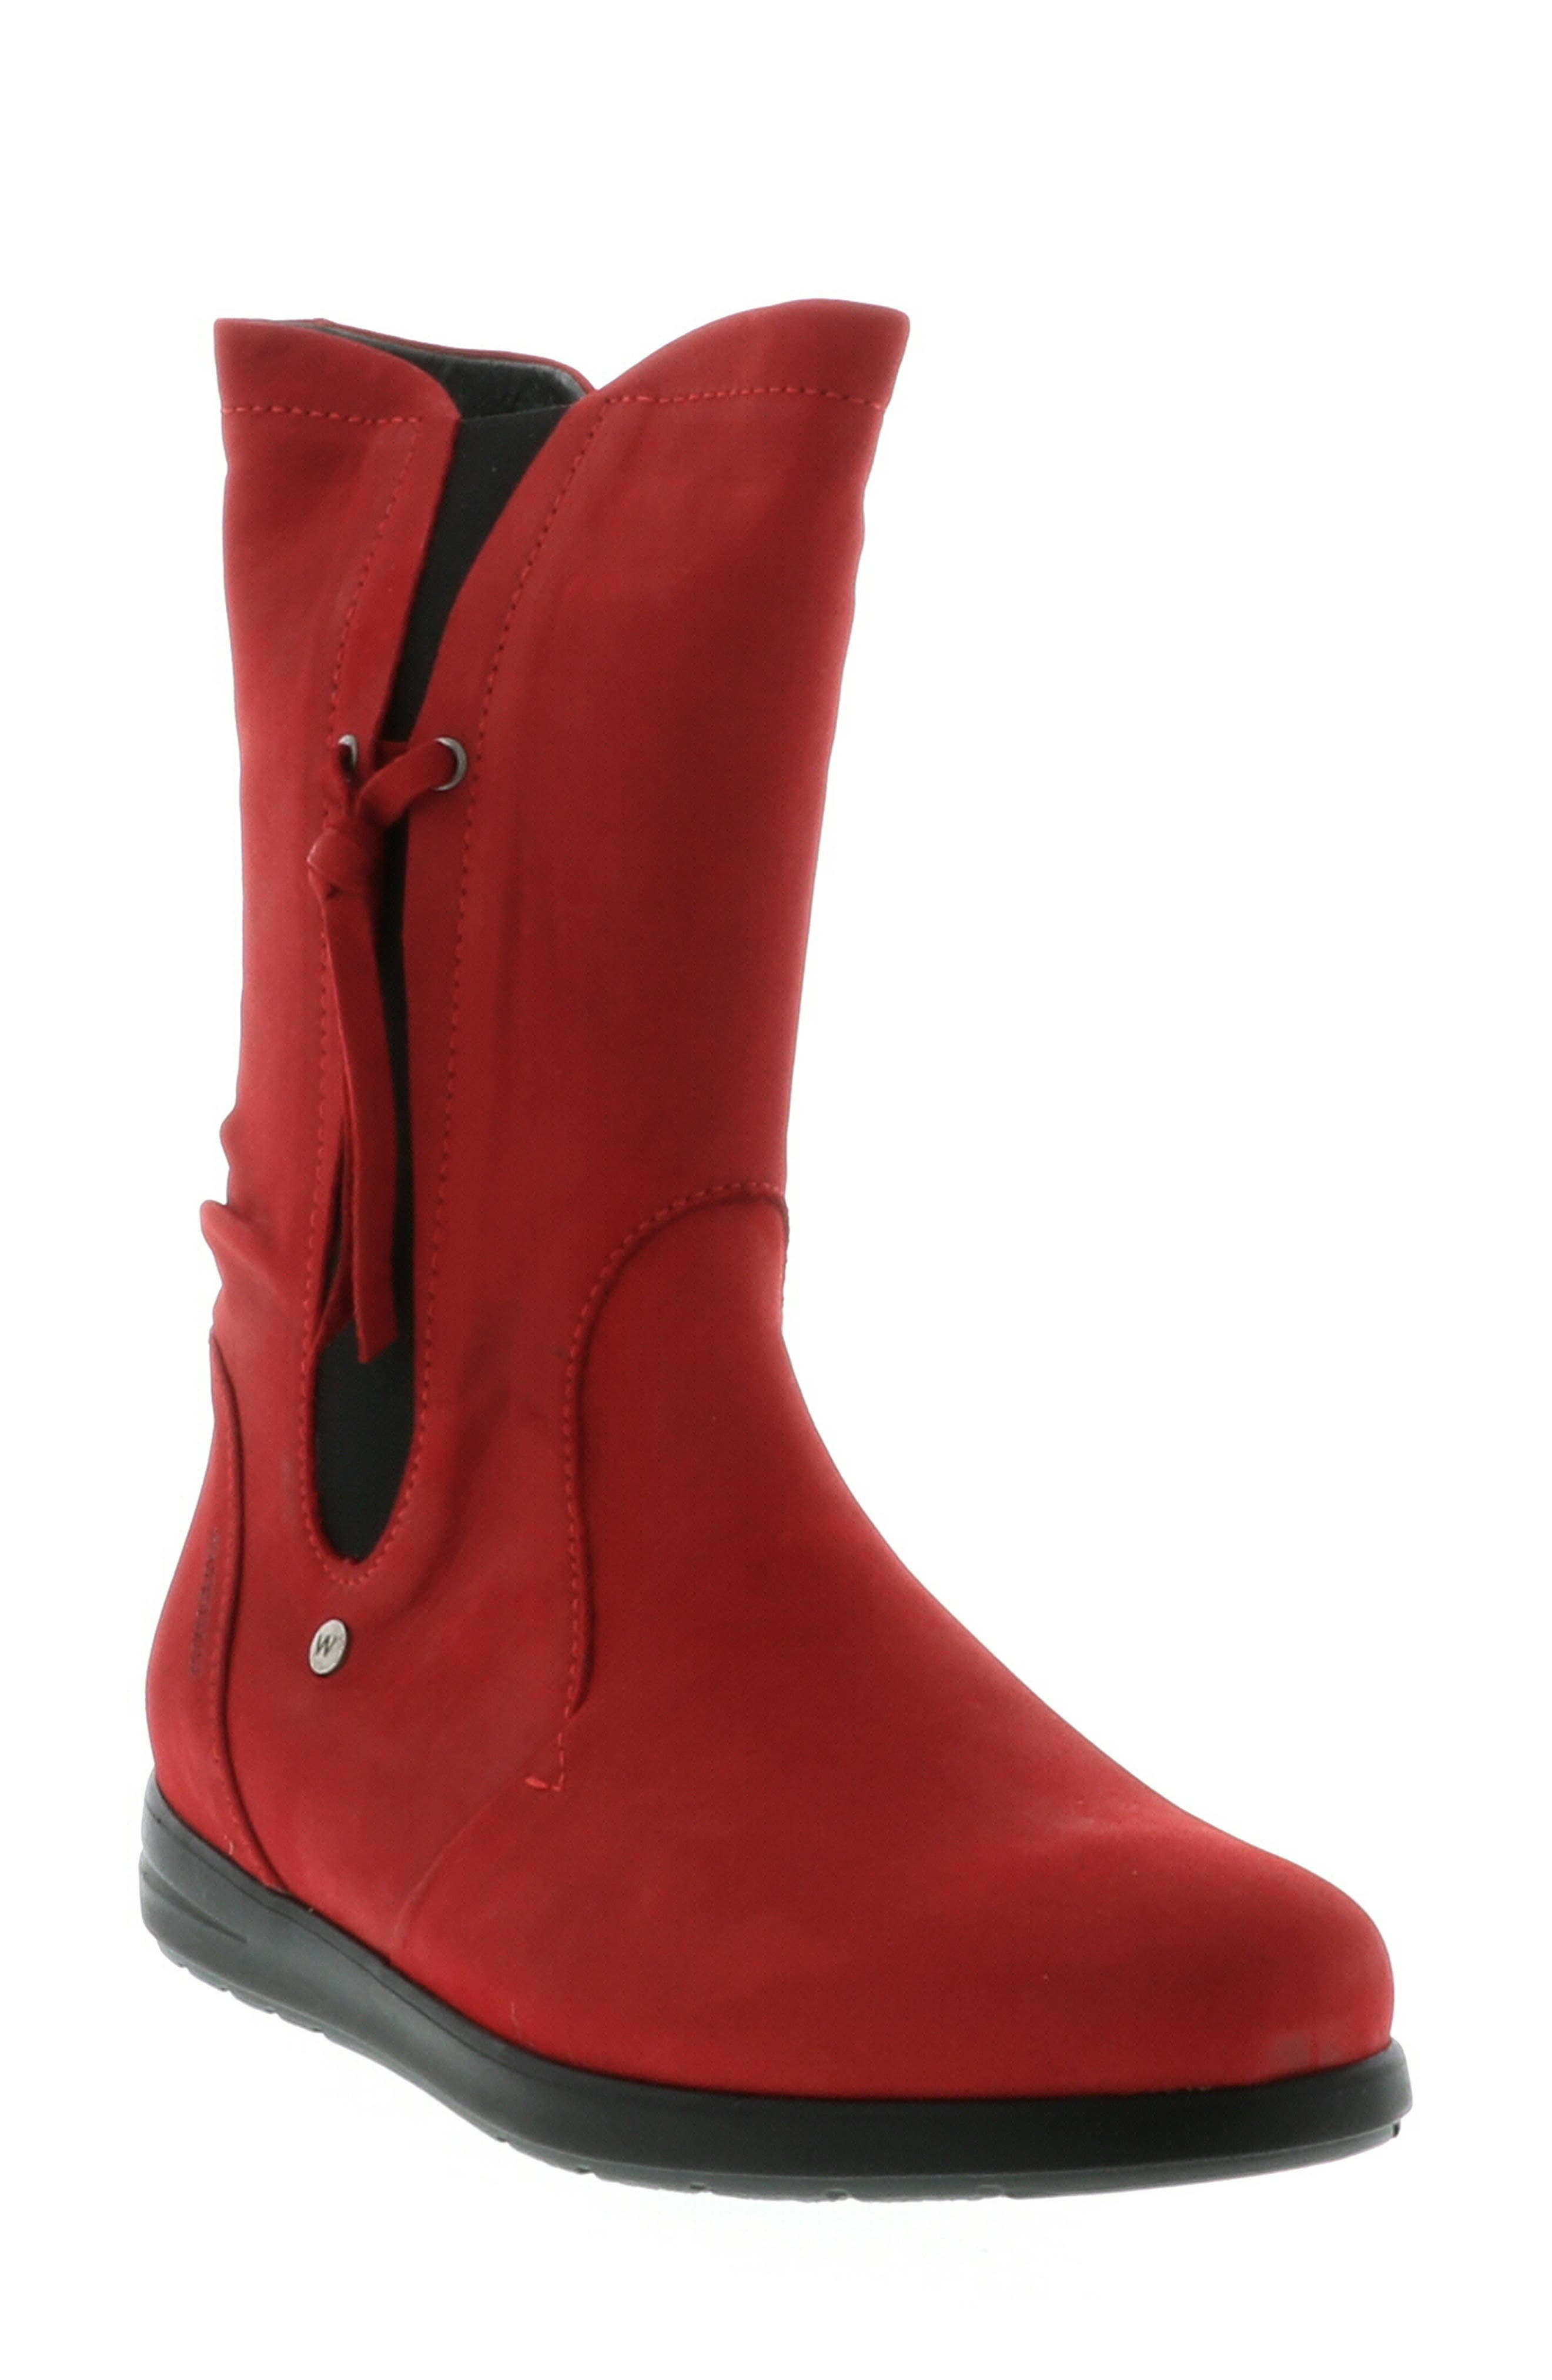 Wolky Newton Waterproof Boot, Red